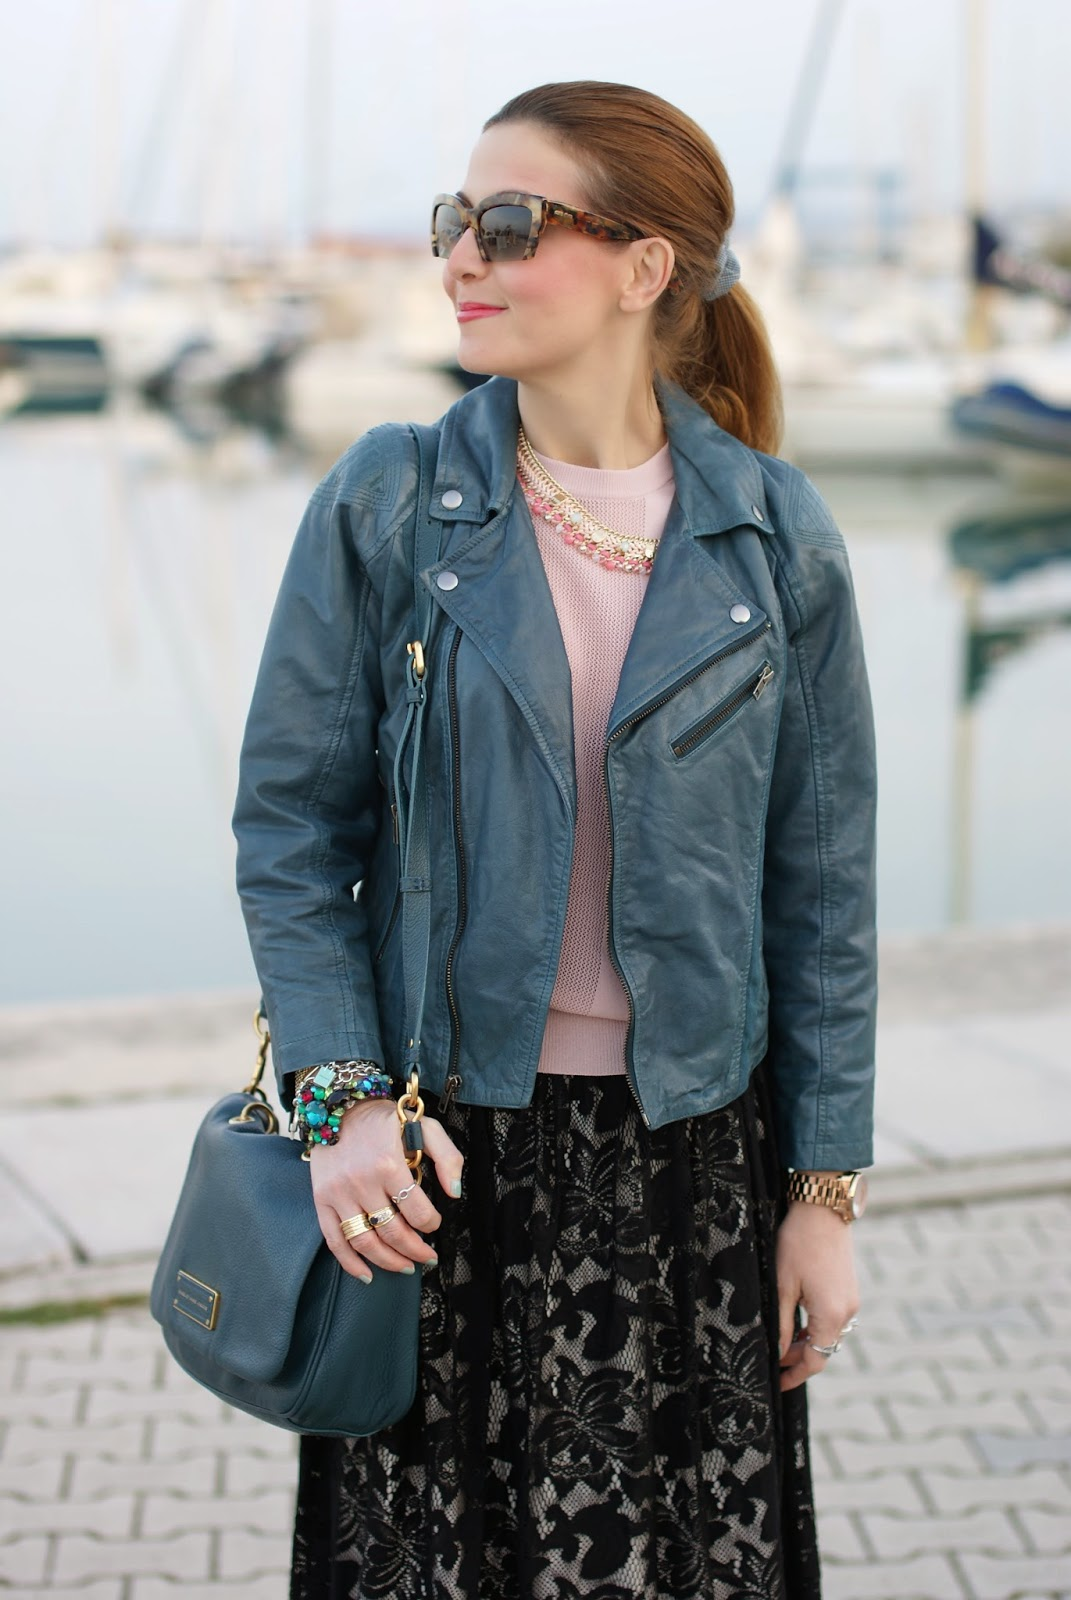 Black lace skirt, Miu Miu razor sunglasses, Barneys originals leather jacket, Fashion and Cookies, fashion blogger